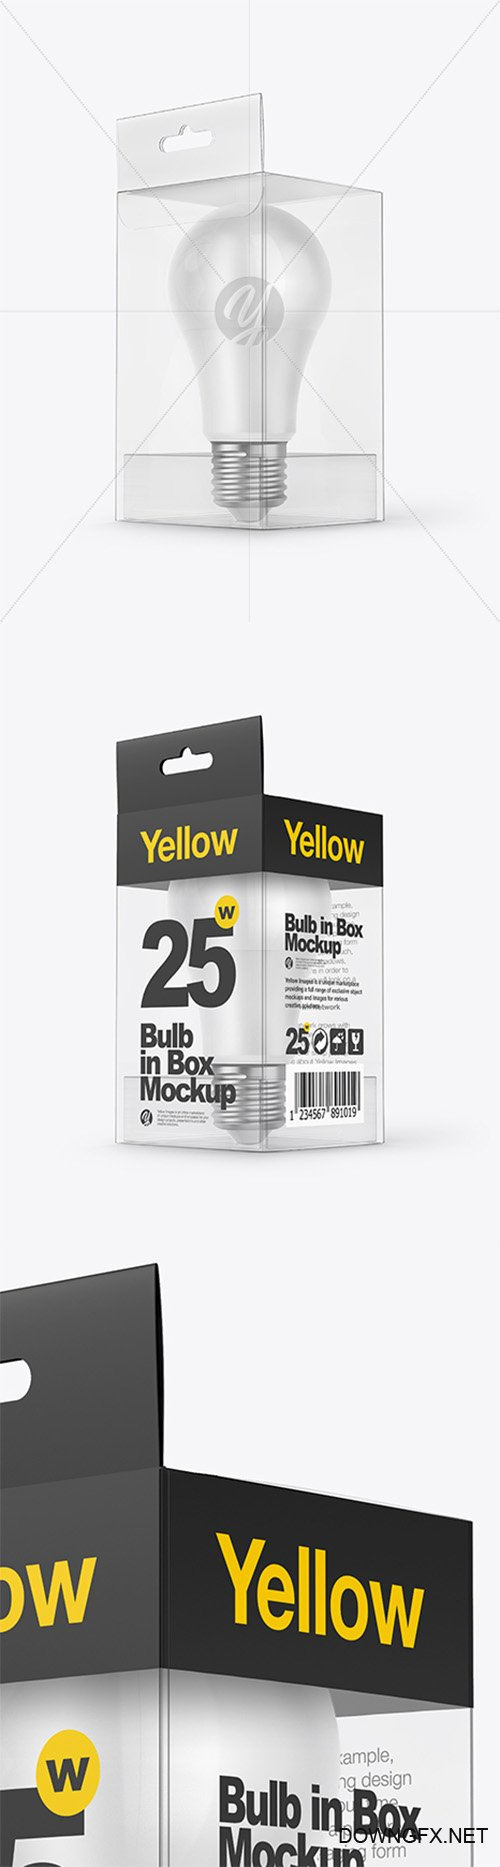 LED Bulb in Box Mockup 38655 TIF